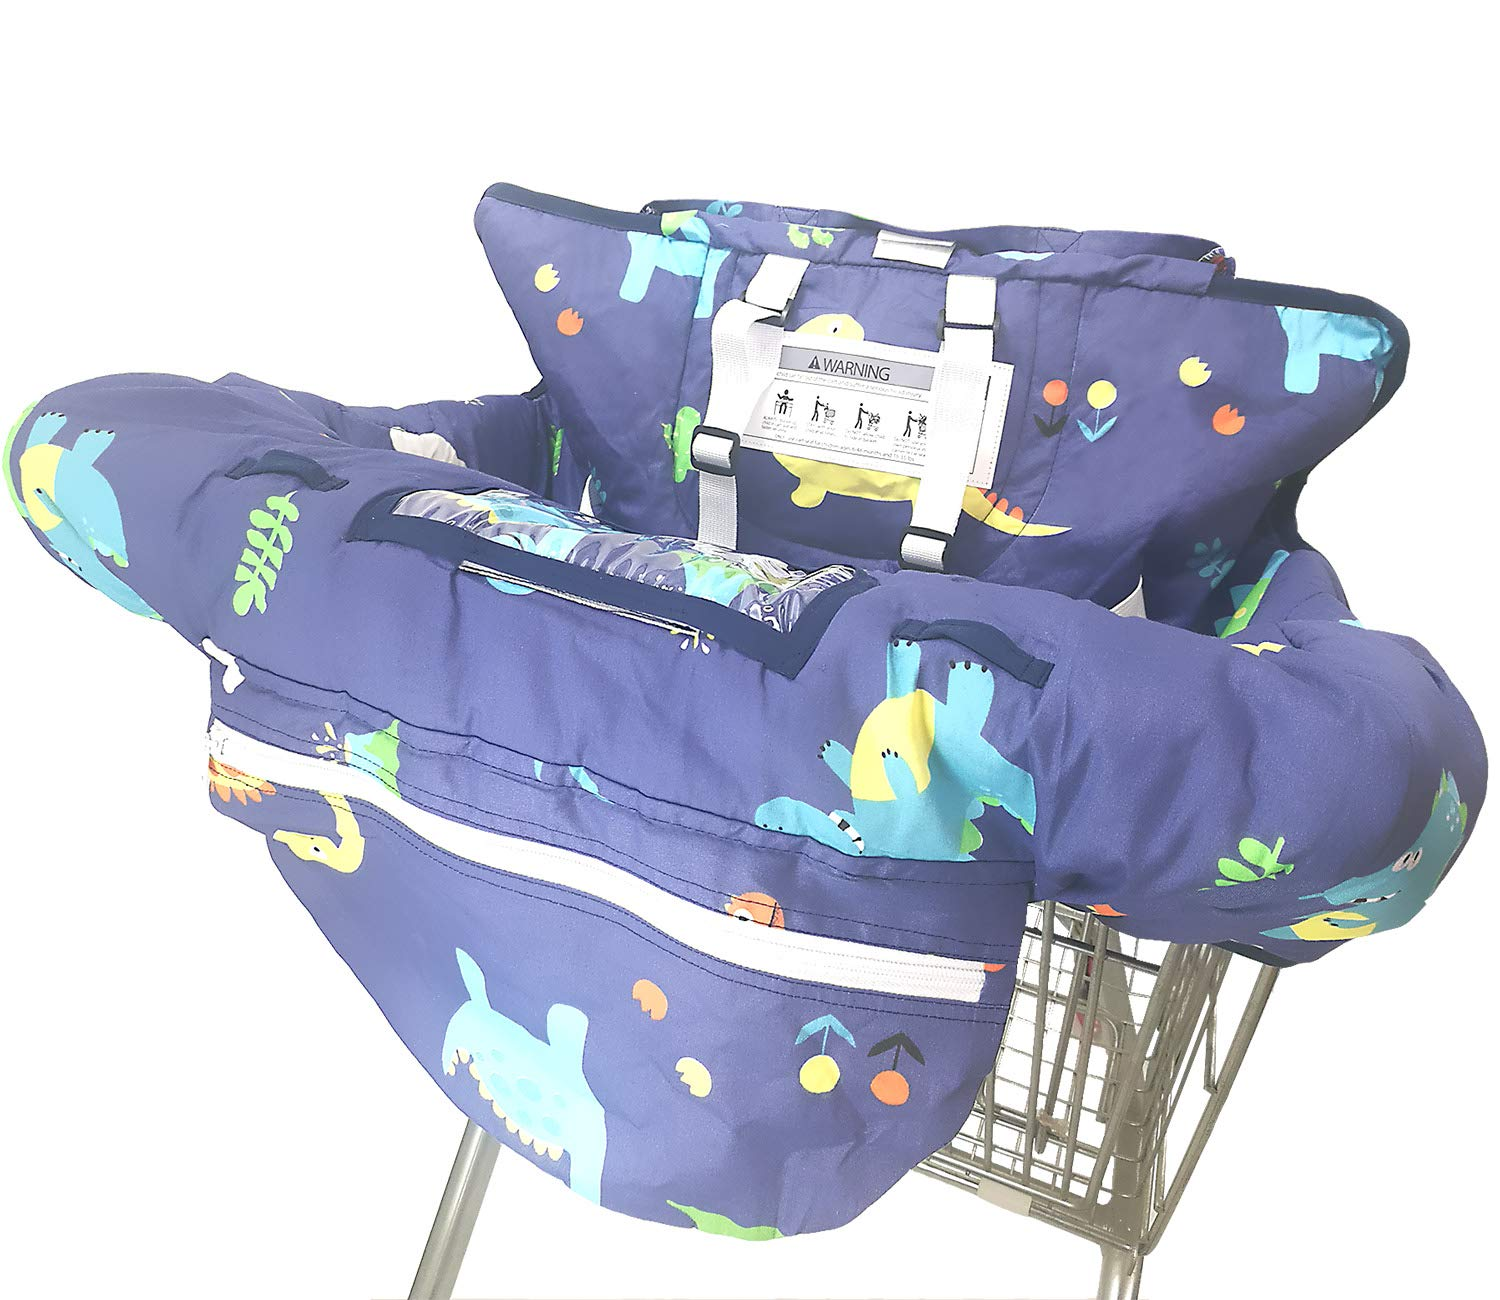 Universal Size Whale Protects Against Germs Soft Comfort Cushioning Easy Install Harness System Premium Shopping Cart Cover /& High Chair Cover